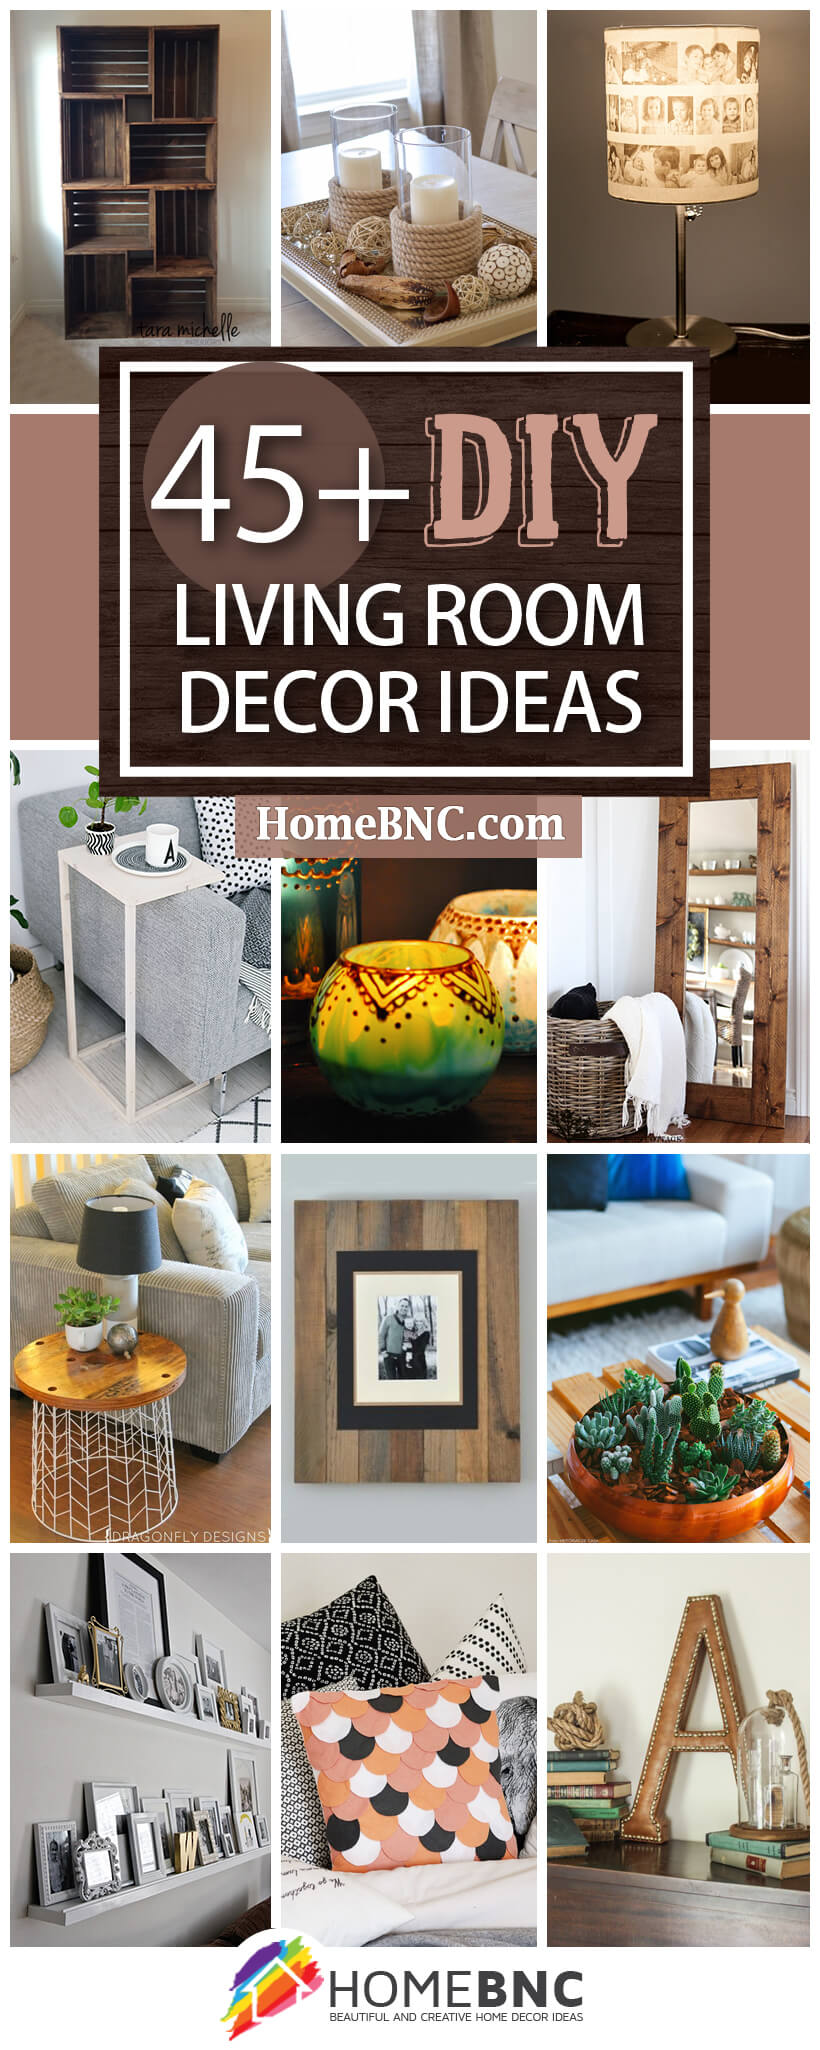 45+ Best DIY Living Room Decorating Ideas and Designs for 2020